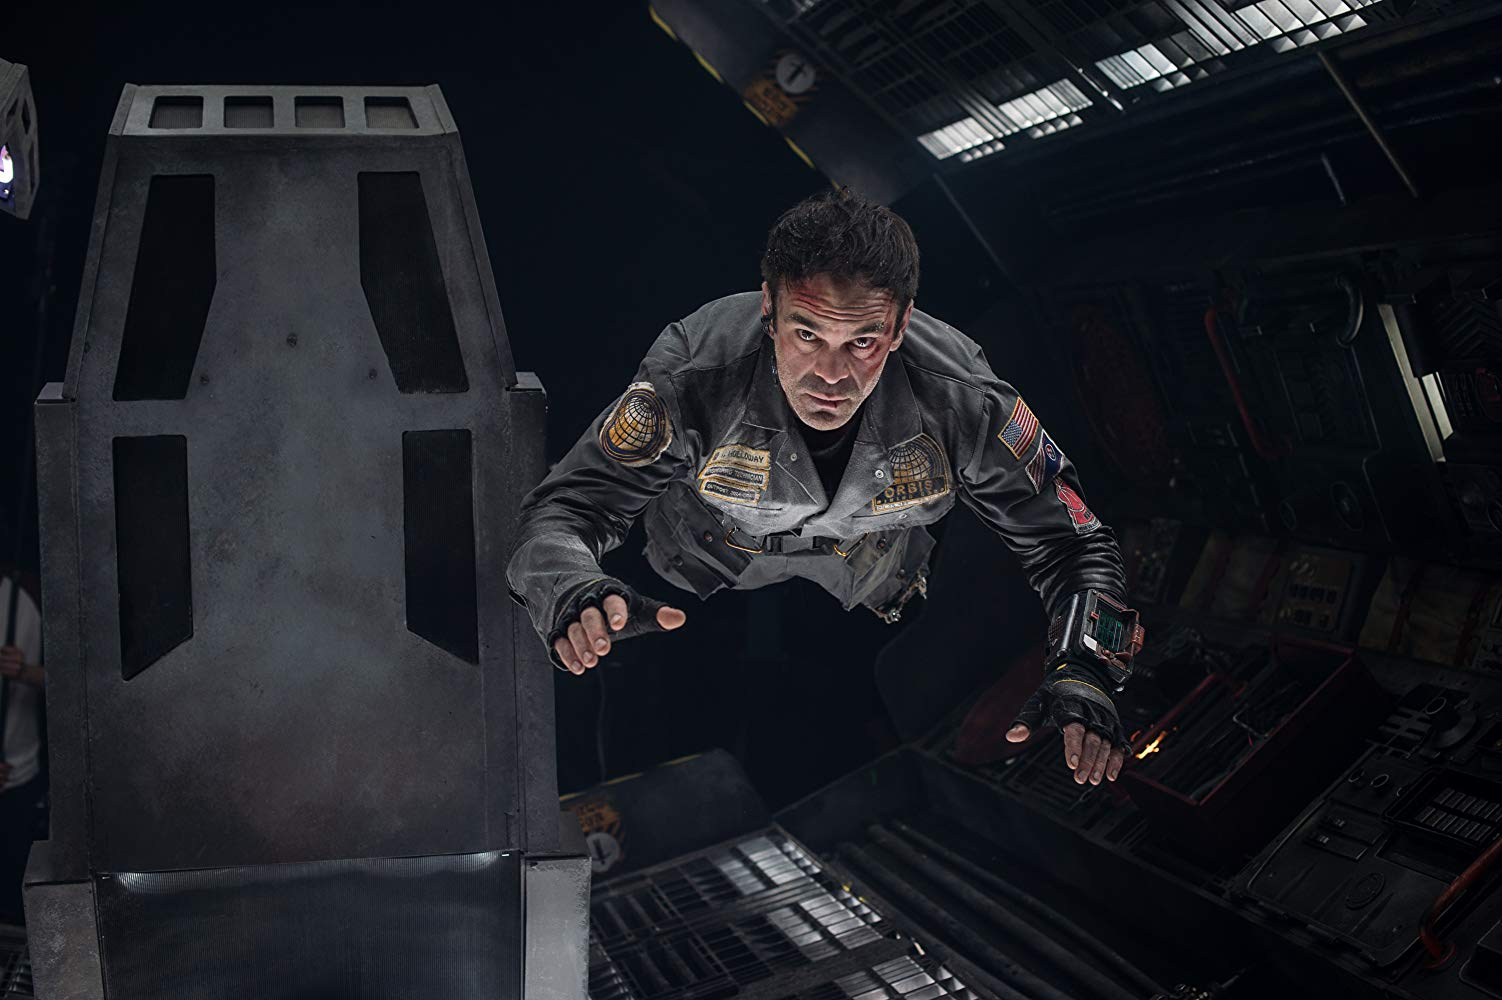 Astronaut Steven Ogg trapped in an escape pod on a collision course with he sun in Solis (2018)